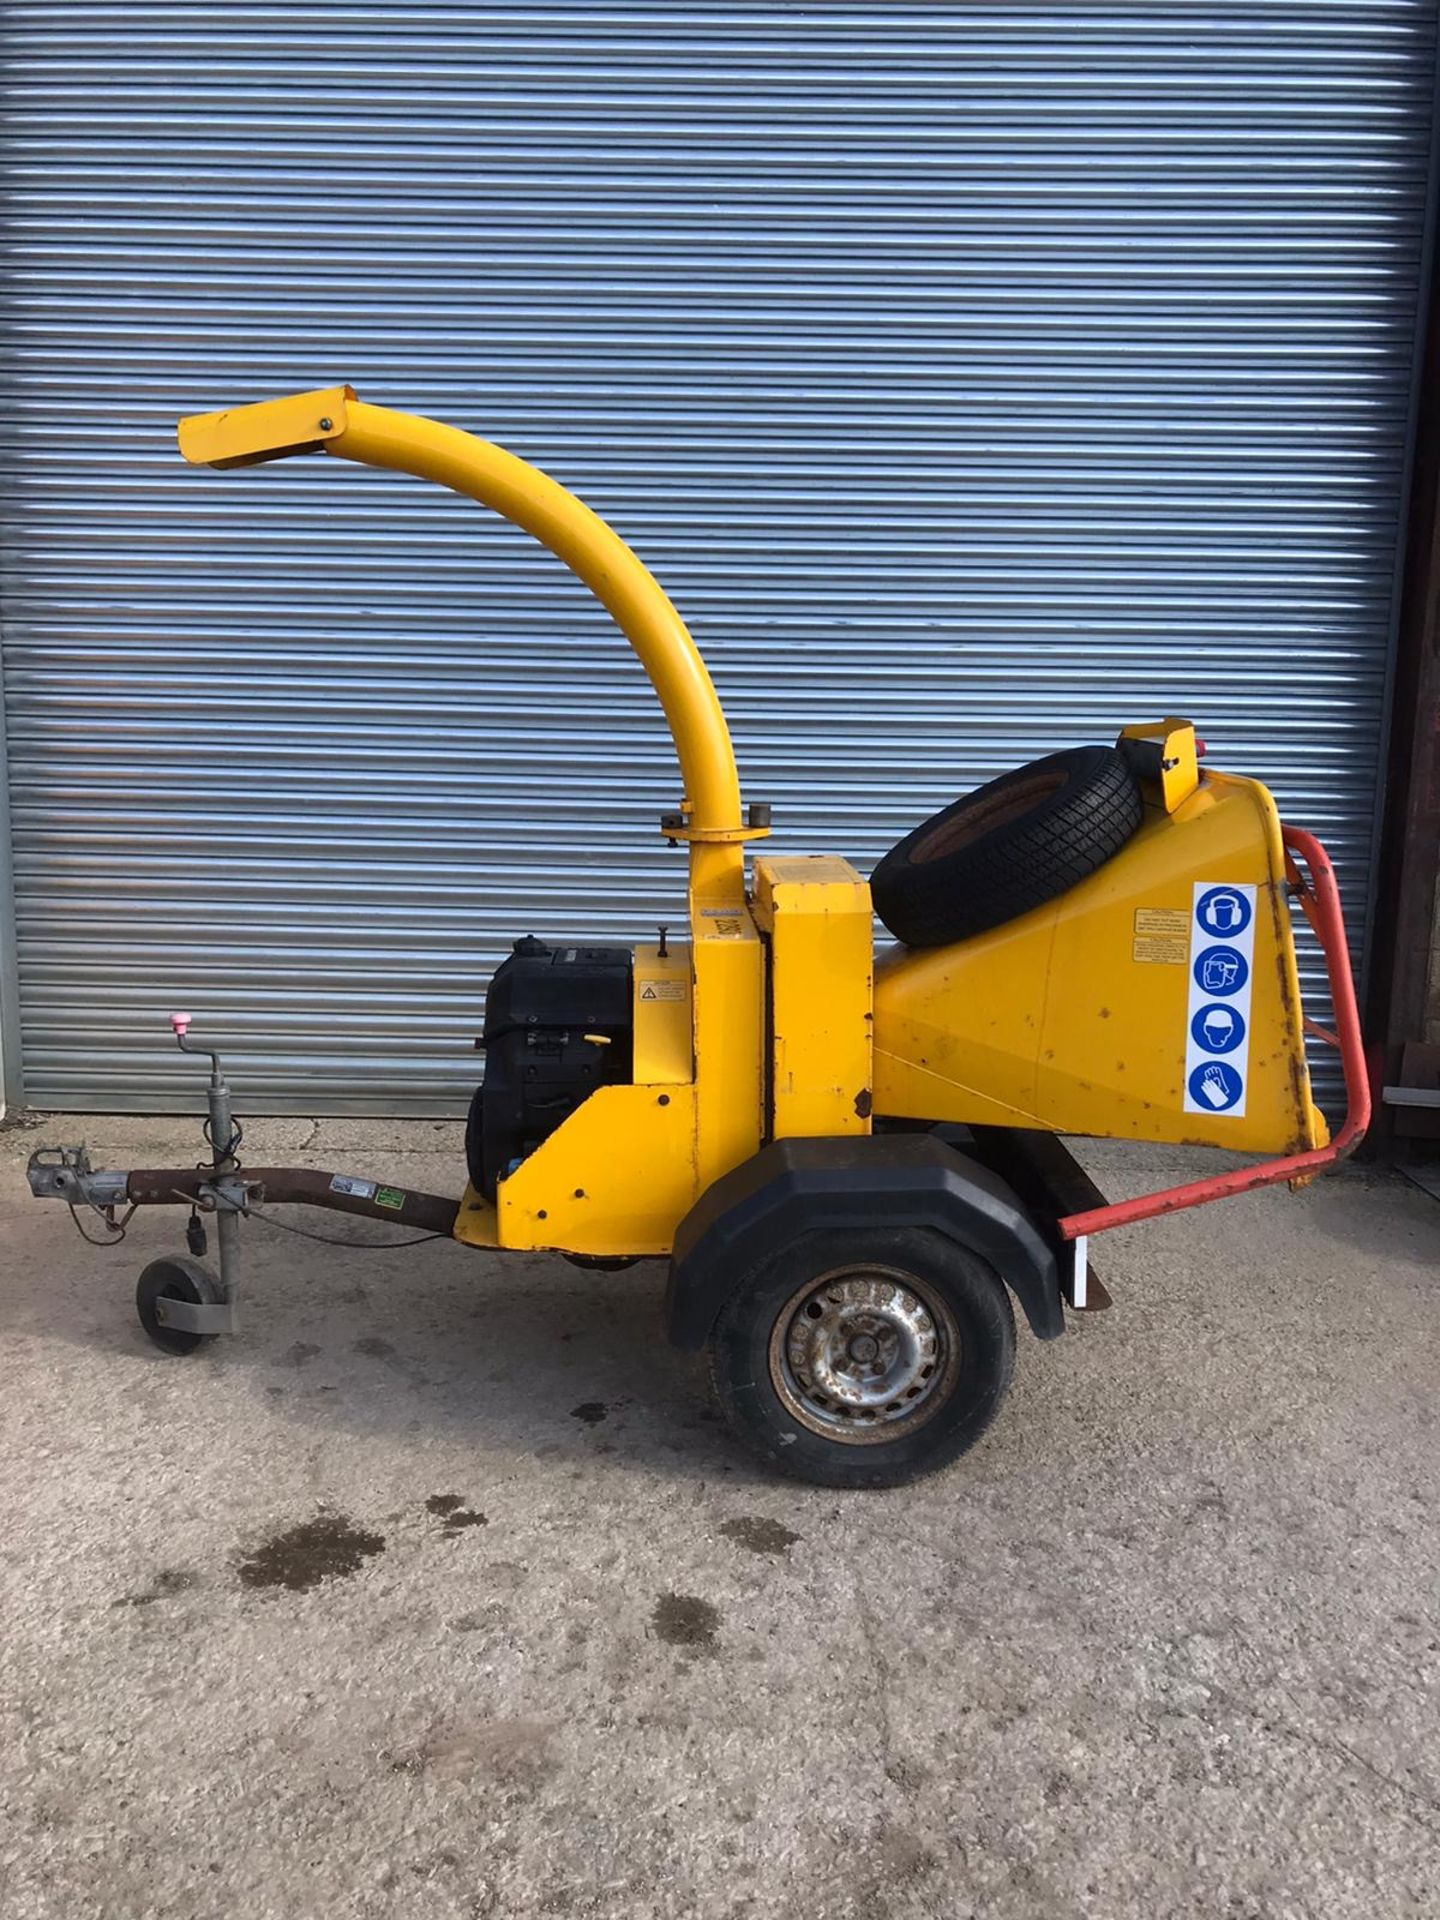 Lot 37 - NTECH / TIMBERWOLF TOWABLE SINGLE AXLE WOOD CHIPPER, RUNS, CHIPS AND STRESS CONTROL, WORKING ORDER